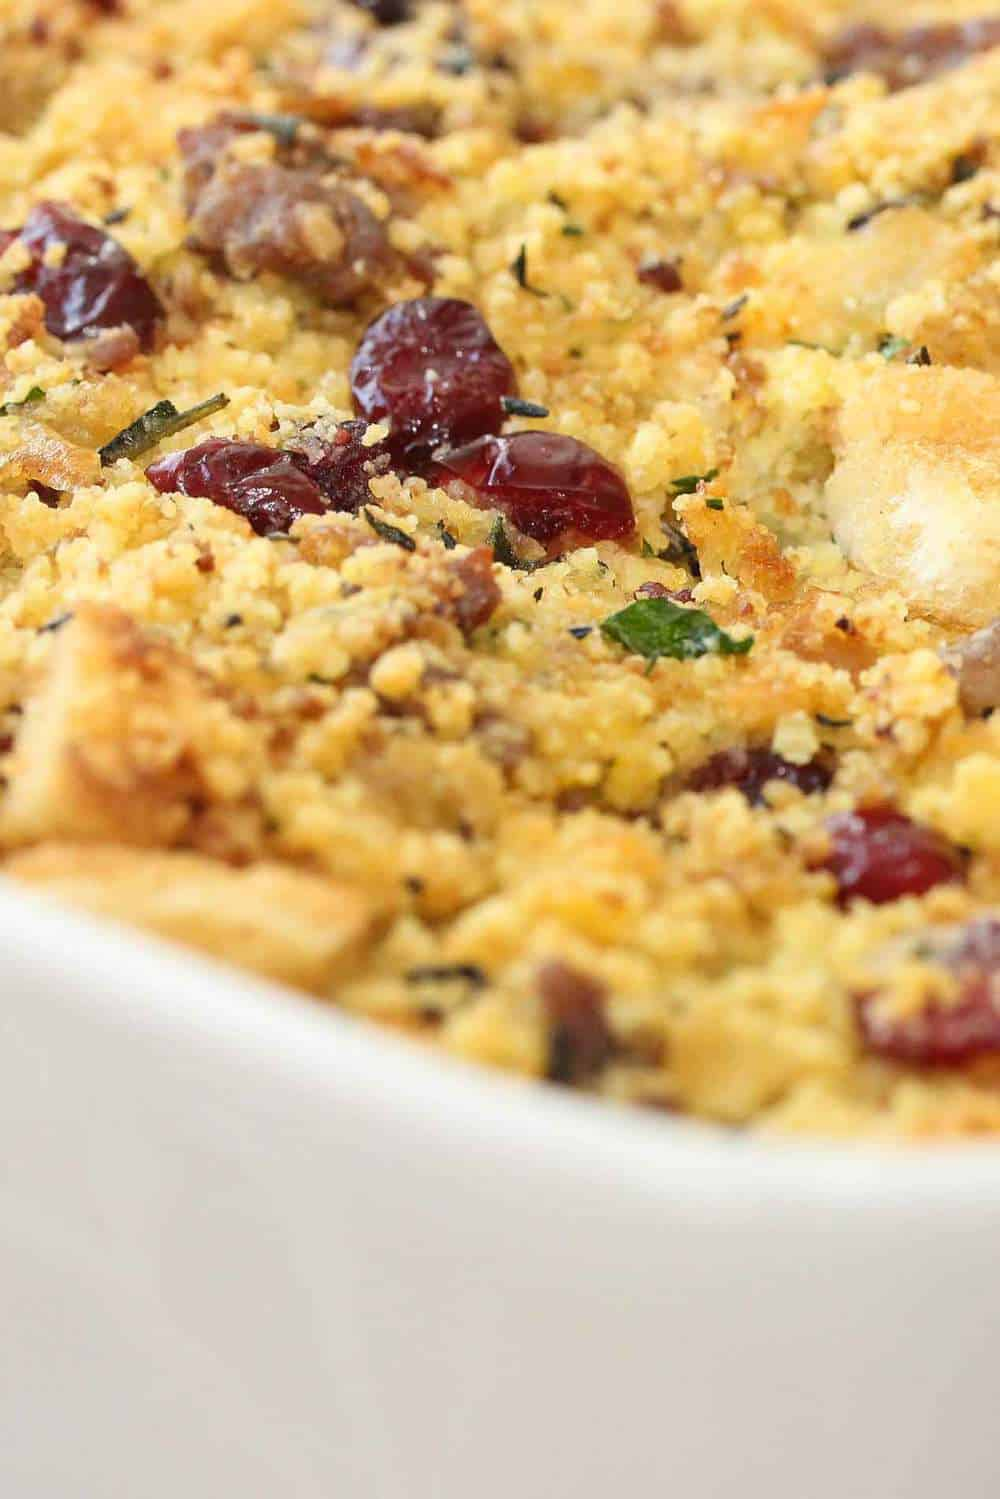 cornbread, sausage, cranberry dressing recipe